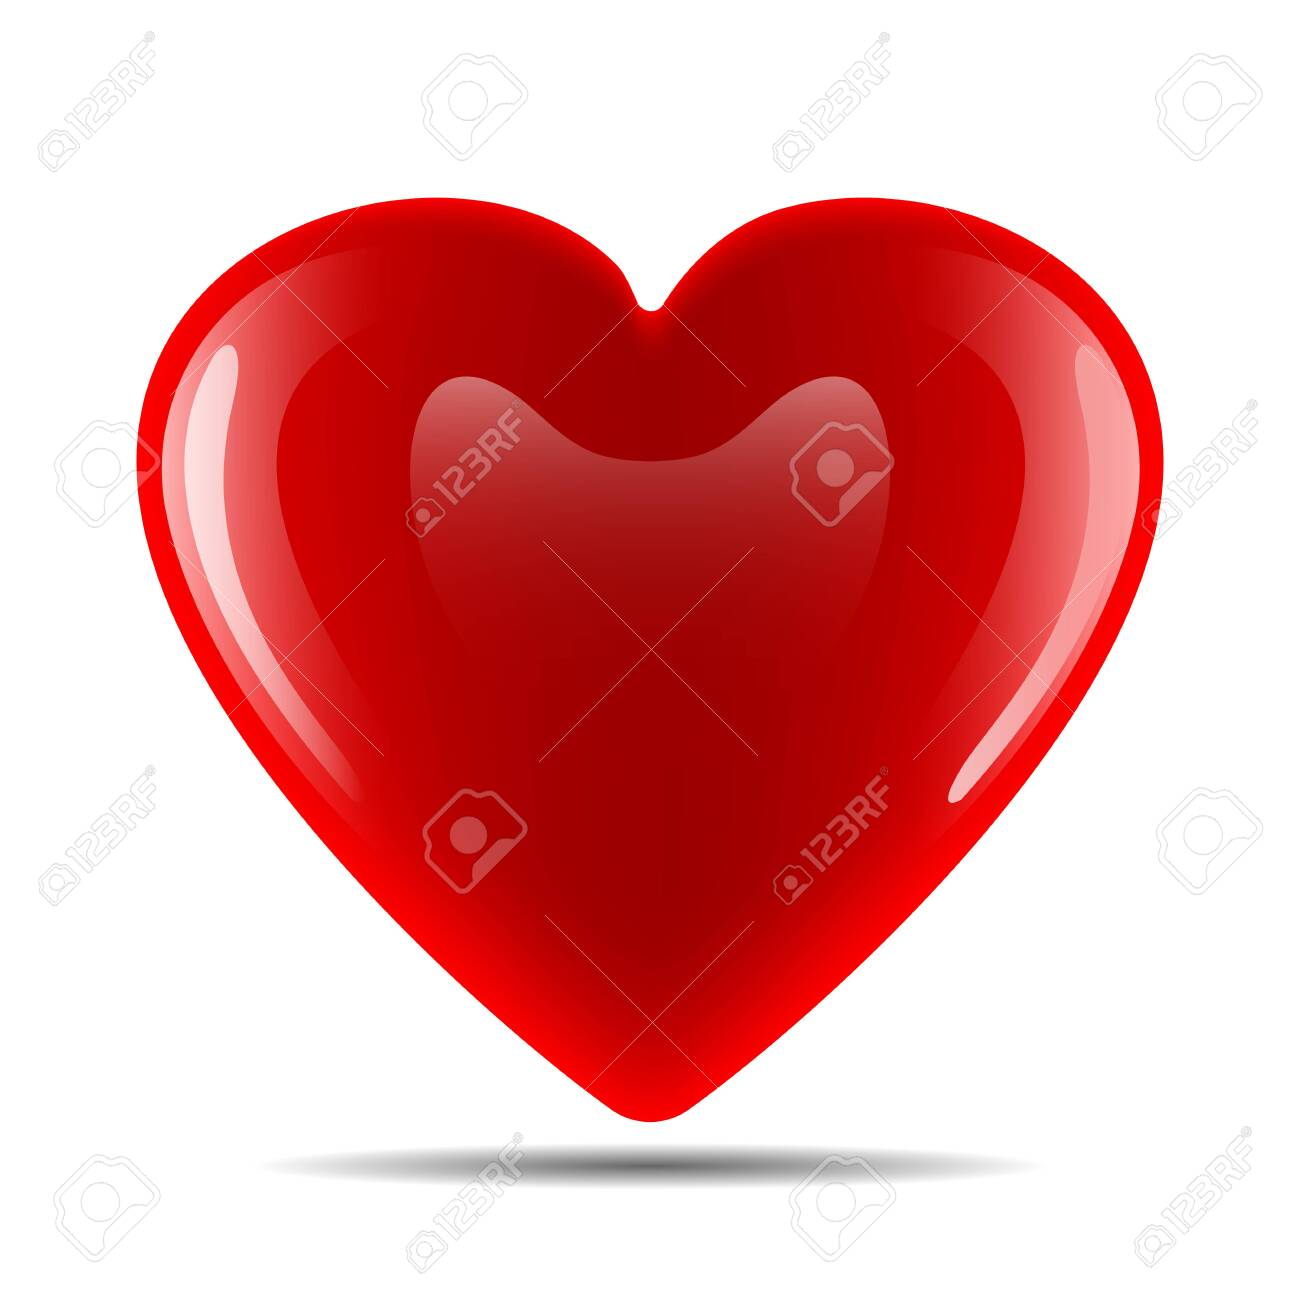 Vector image of a heart on a white background - 122412305